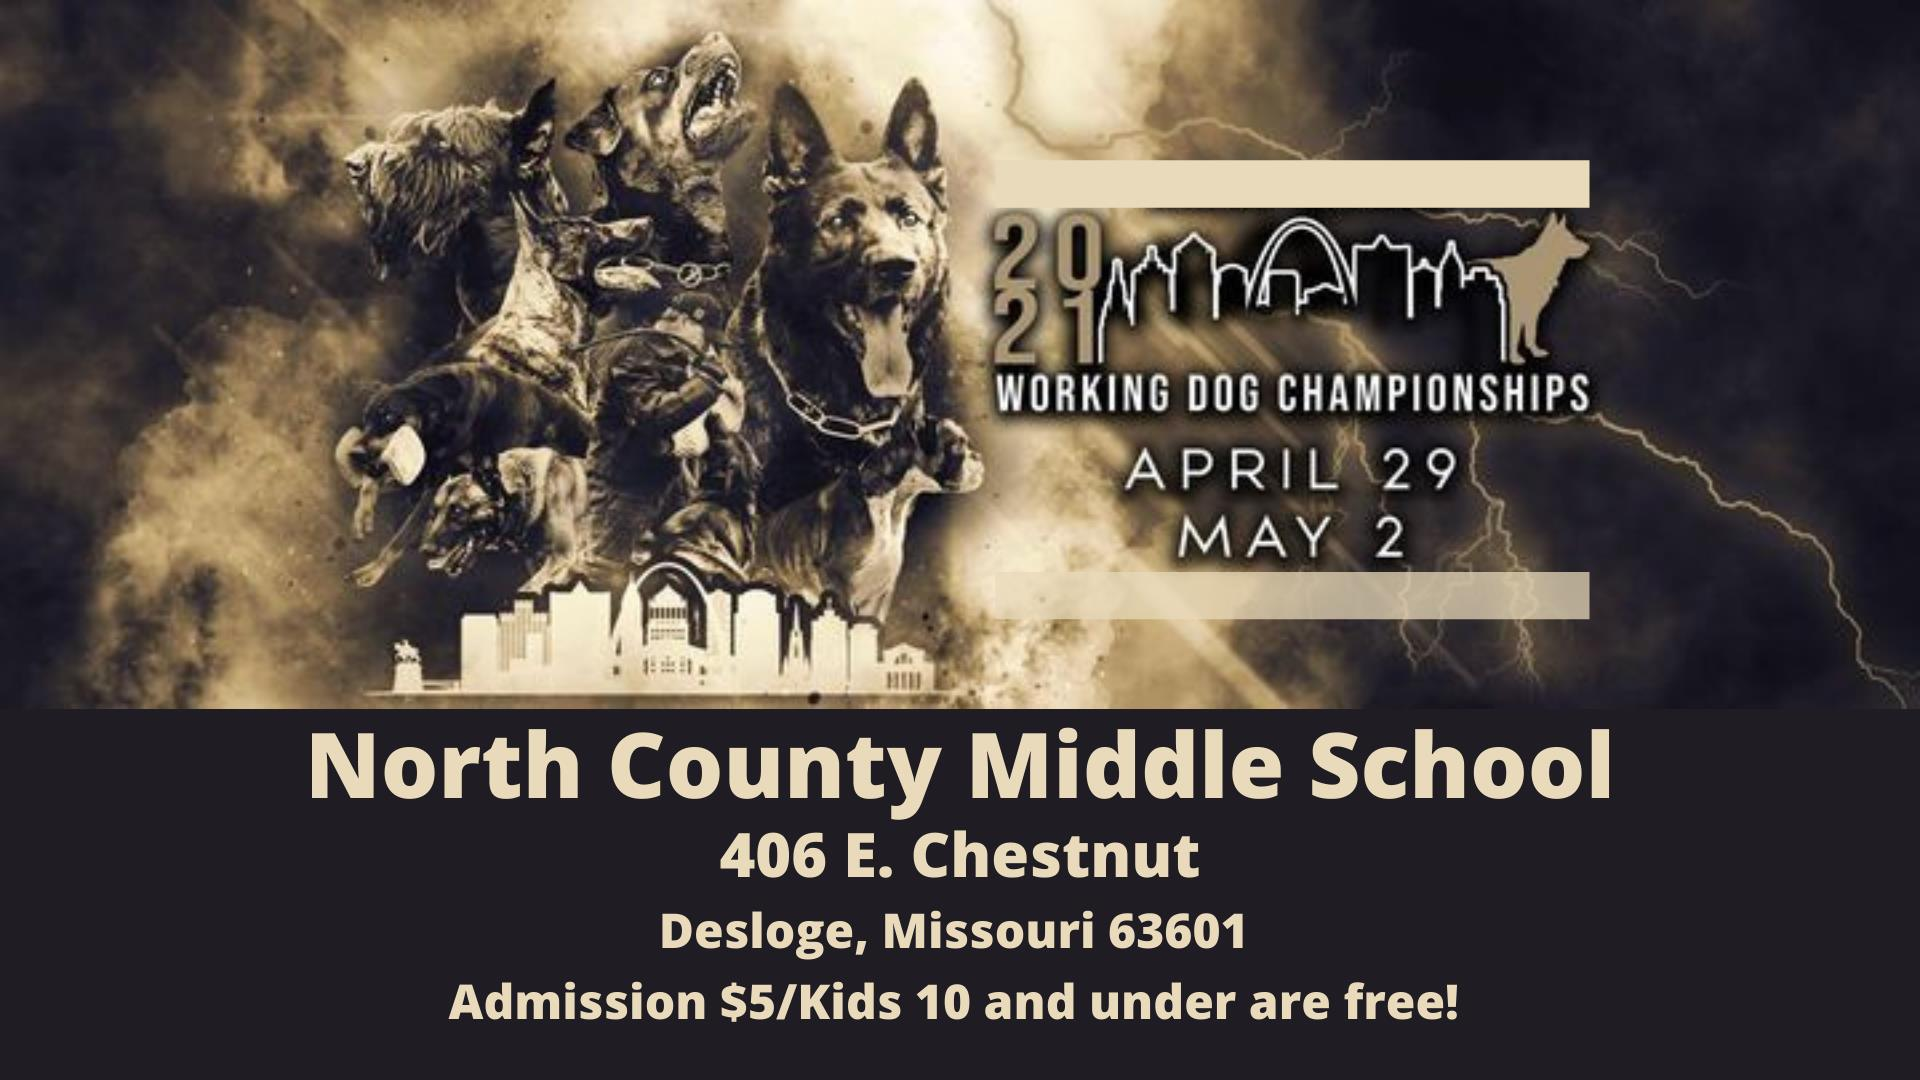 Working Dog Championships at Desloge